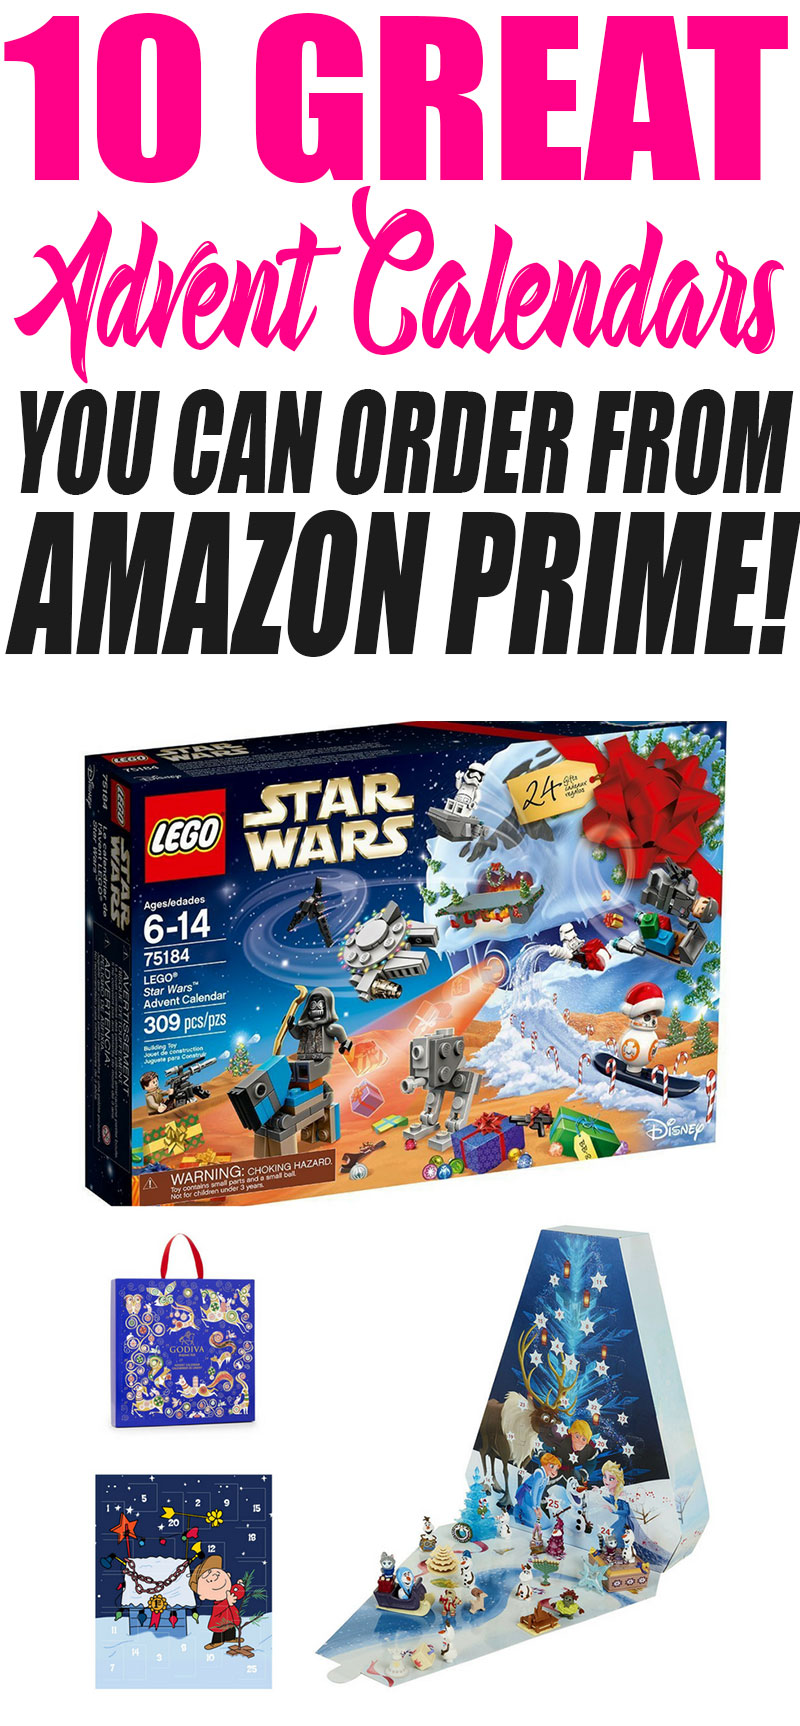 10 awesome advent calendars you can order from Amazon Prime! Make the holiday super fun by having a special treat each and every day! HOW FUN IS THAT LEGO STAR WARS ONE? Christmas will be even more awesome with one of these fun advent activities!